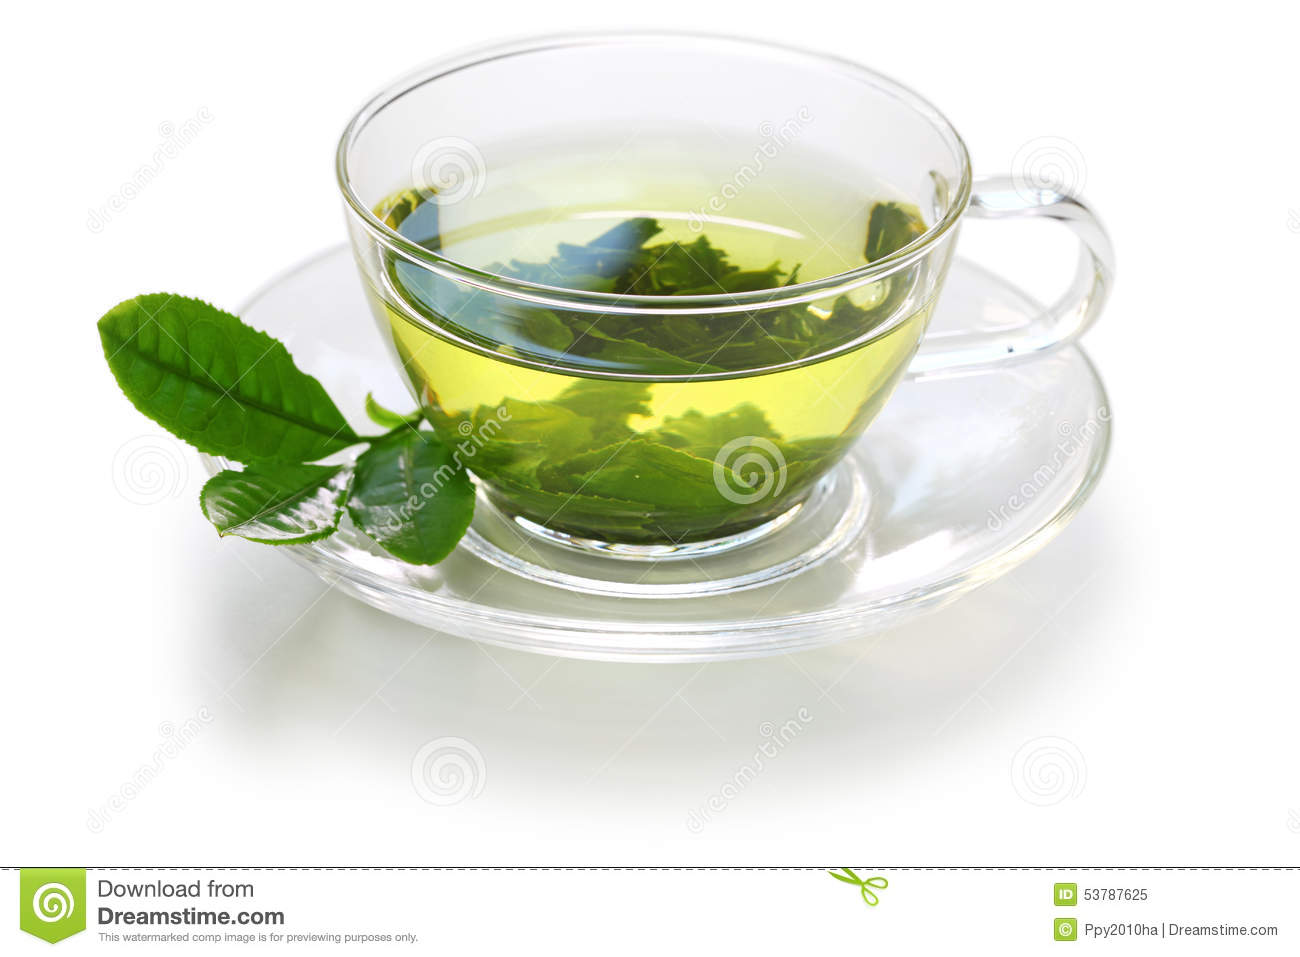 Glass cup of Japanese green tea